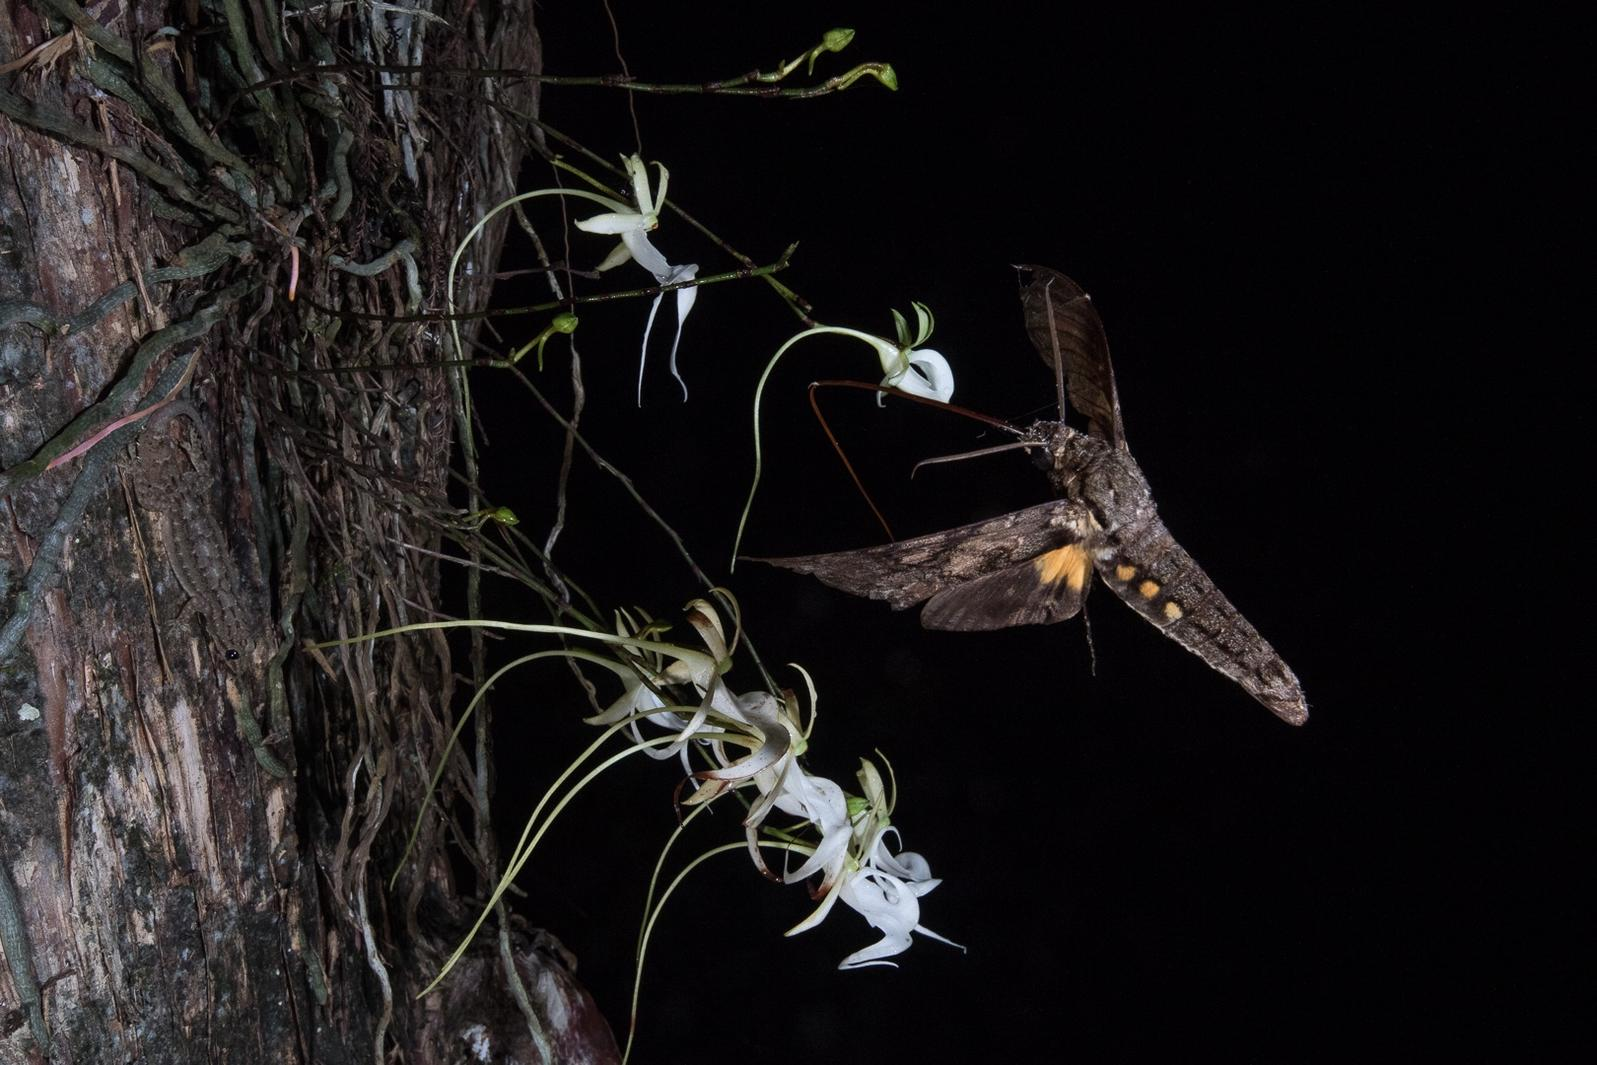 Giant Sphinx Moth. Photo by Mac Stone.